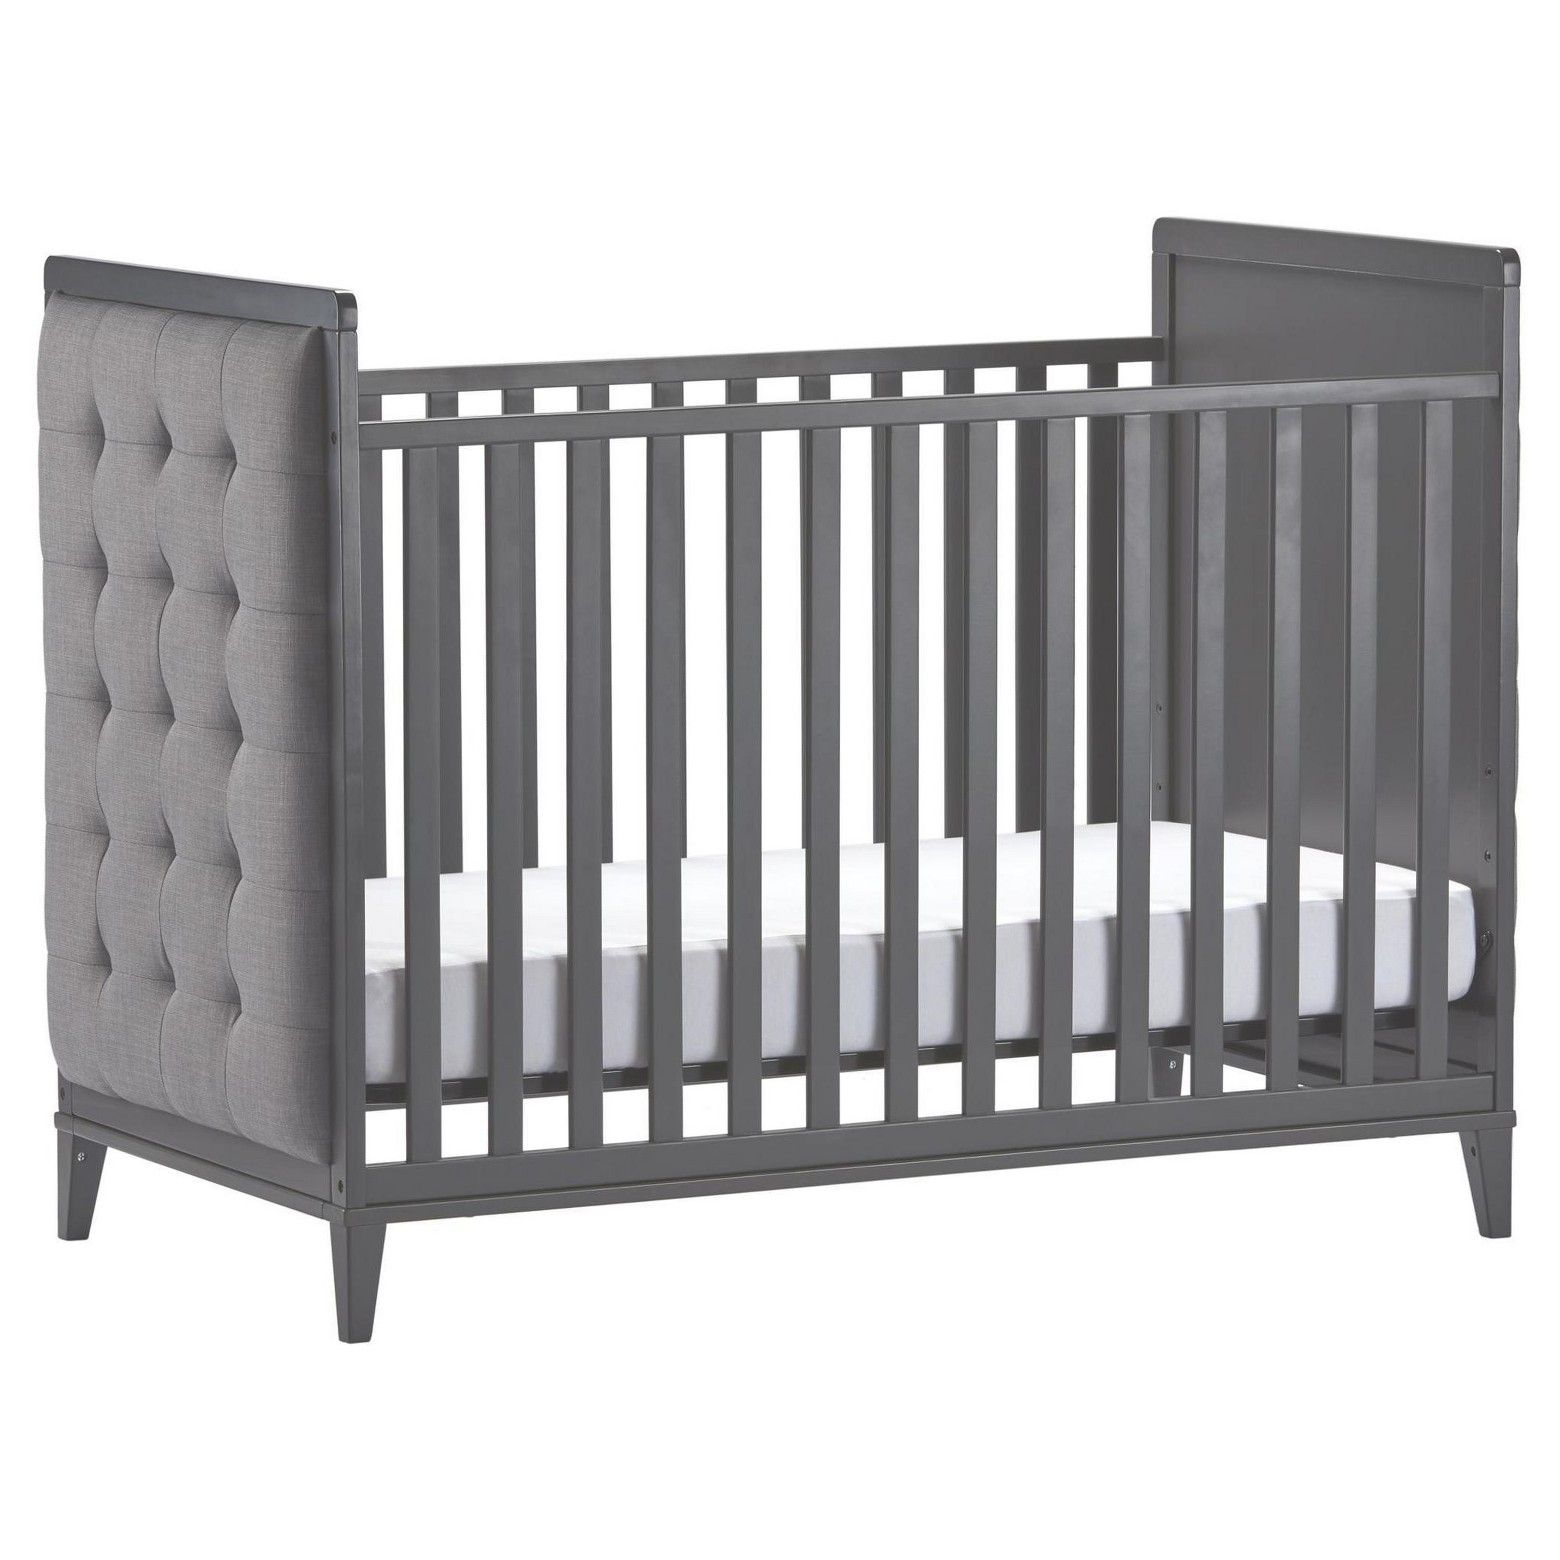 high end childrens furniture. We Updated Traditional French Upholstered Nursery Furniture With A Clean, Modern Look. The Tufted Fabric End Panels Add Softness To This Classic Design, High Childrens